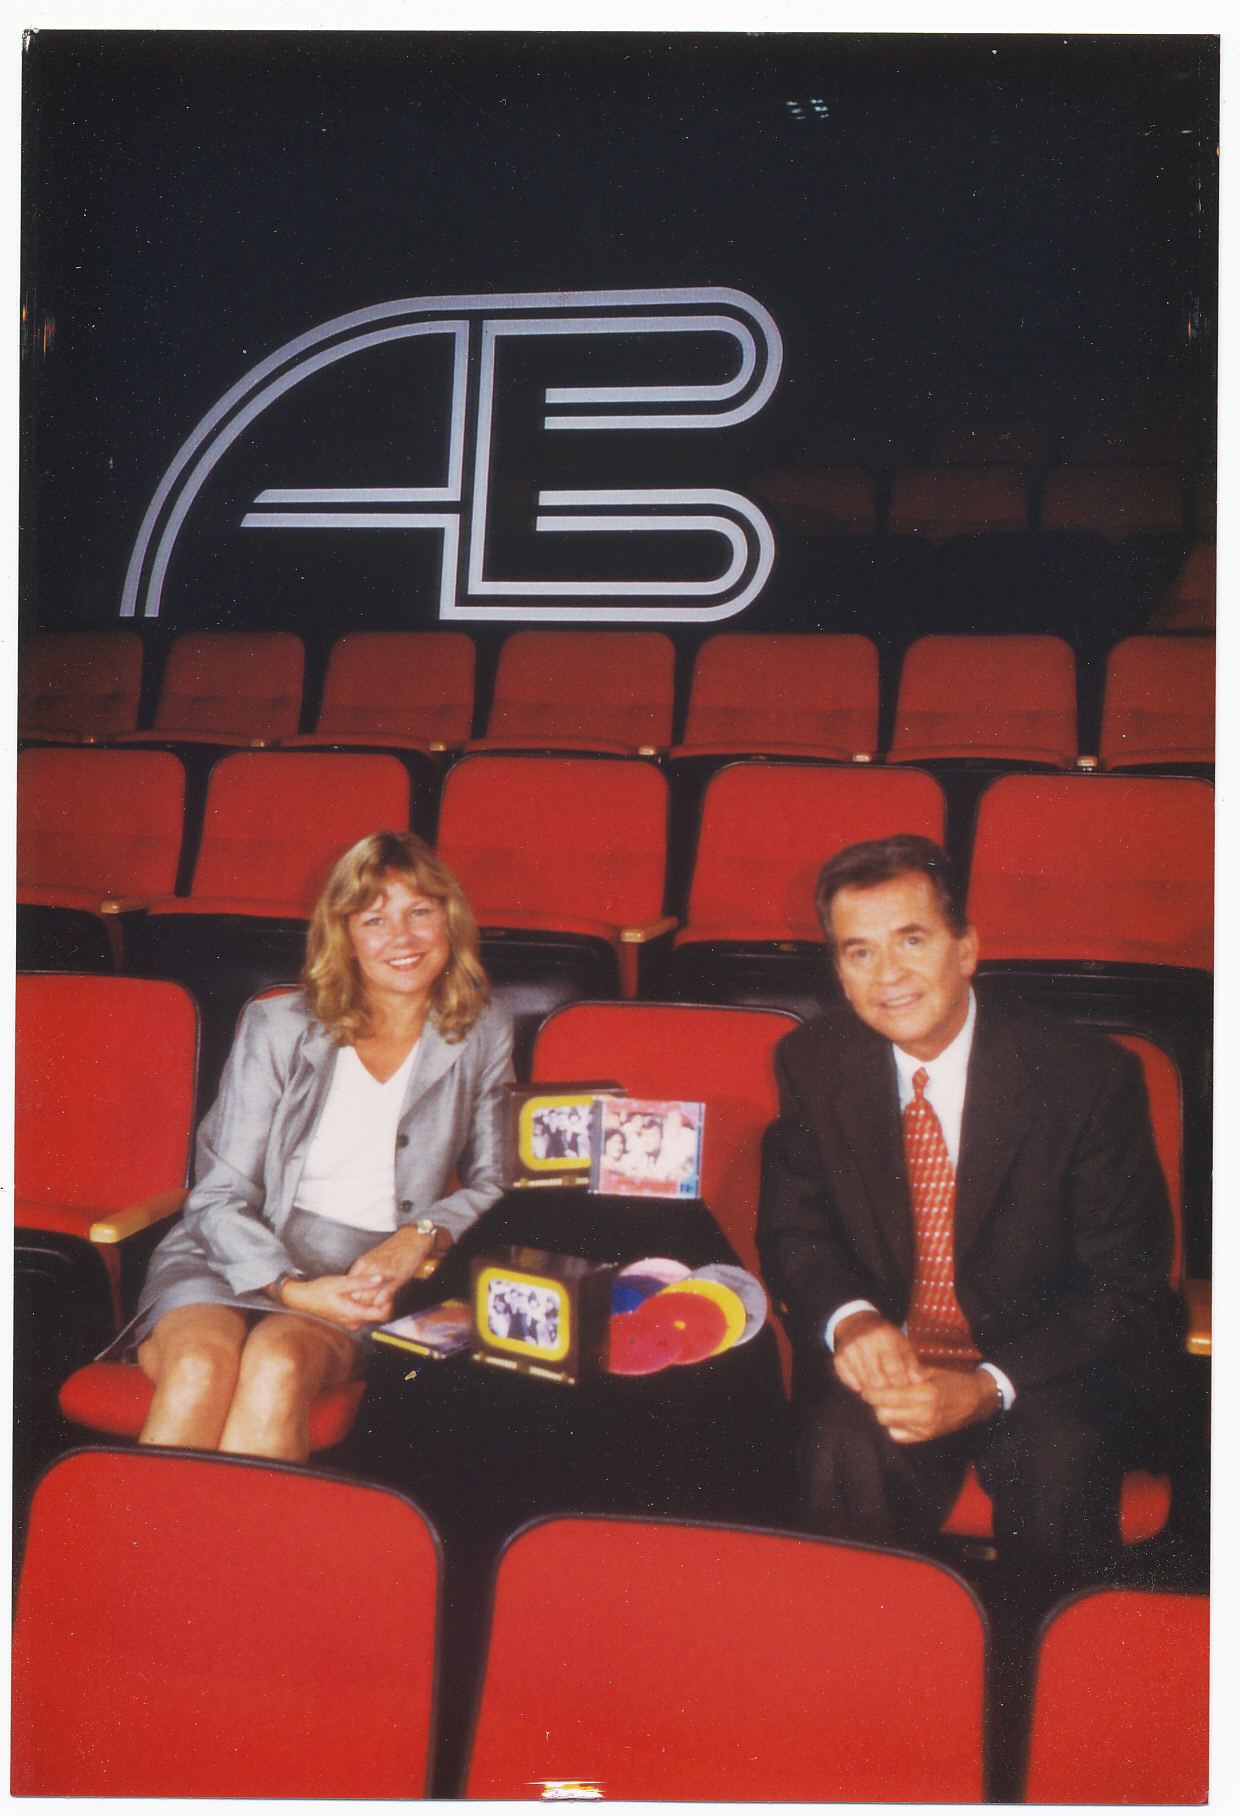 While with Q Records: With legendary producer and TV host Dick Clark